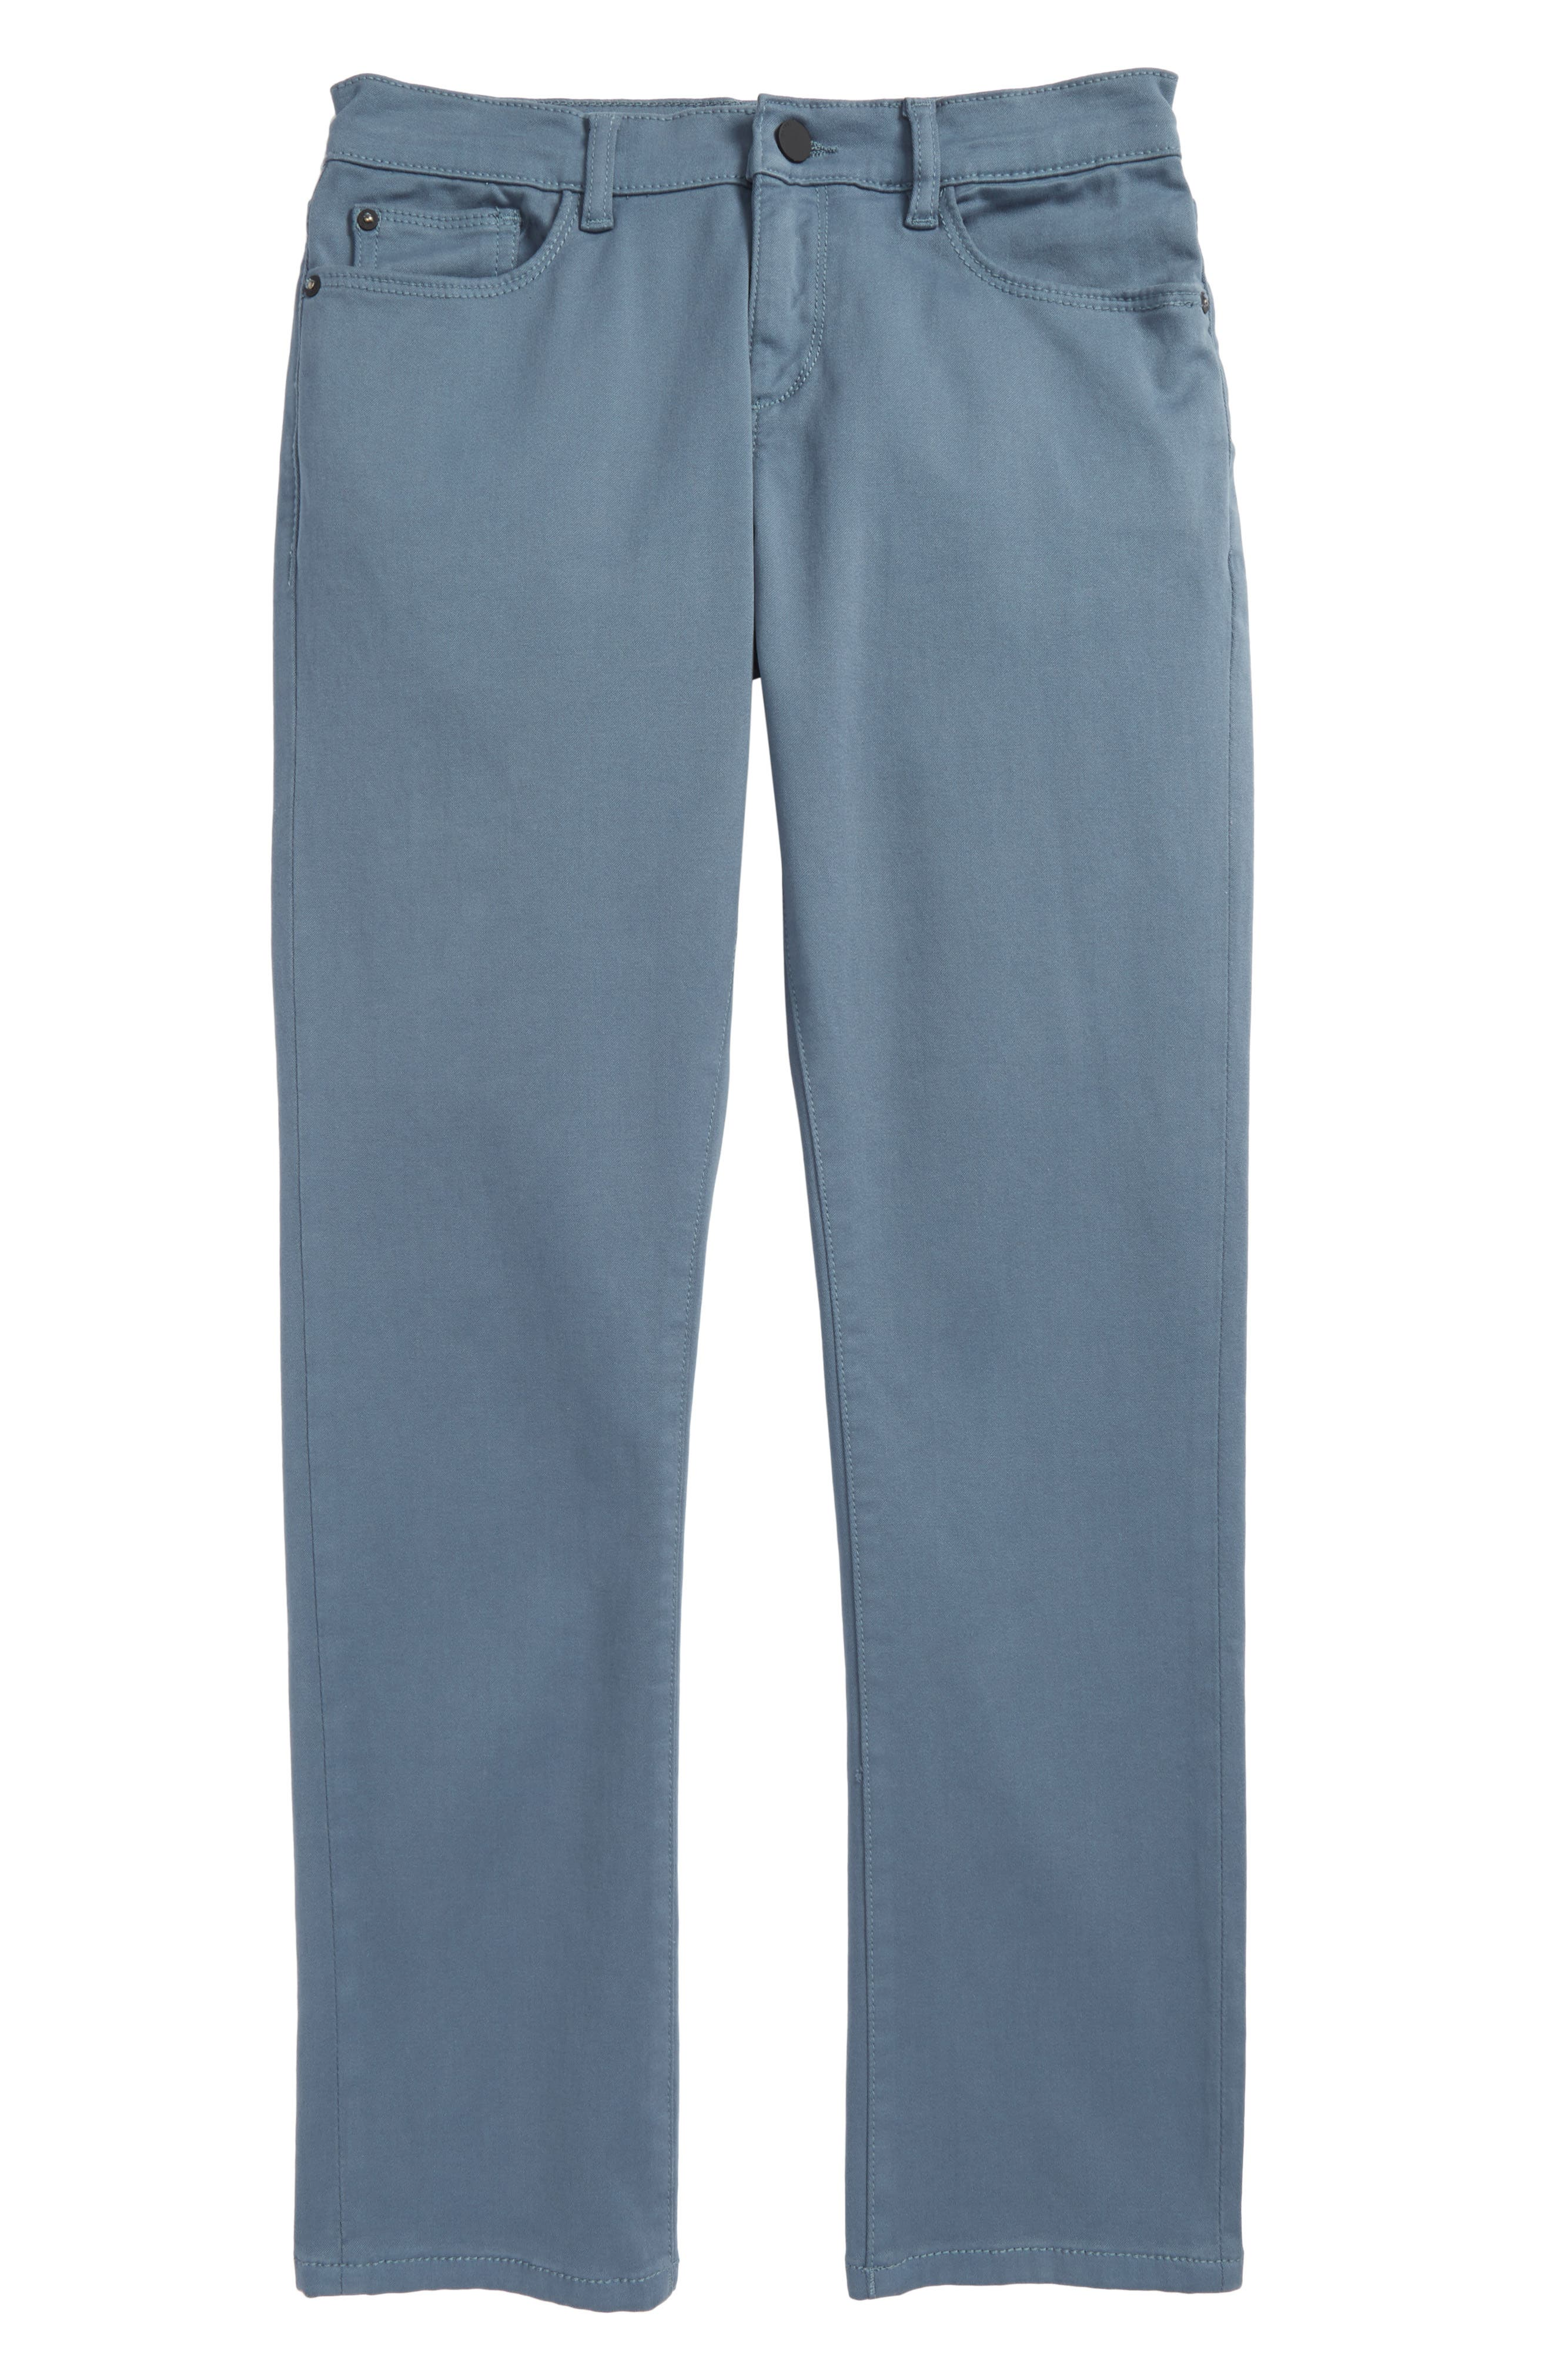 Brady Slim Fit Twill Pants,                         Main,                         color, Puddle